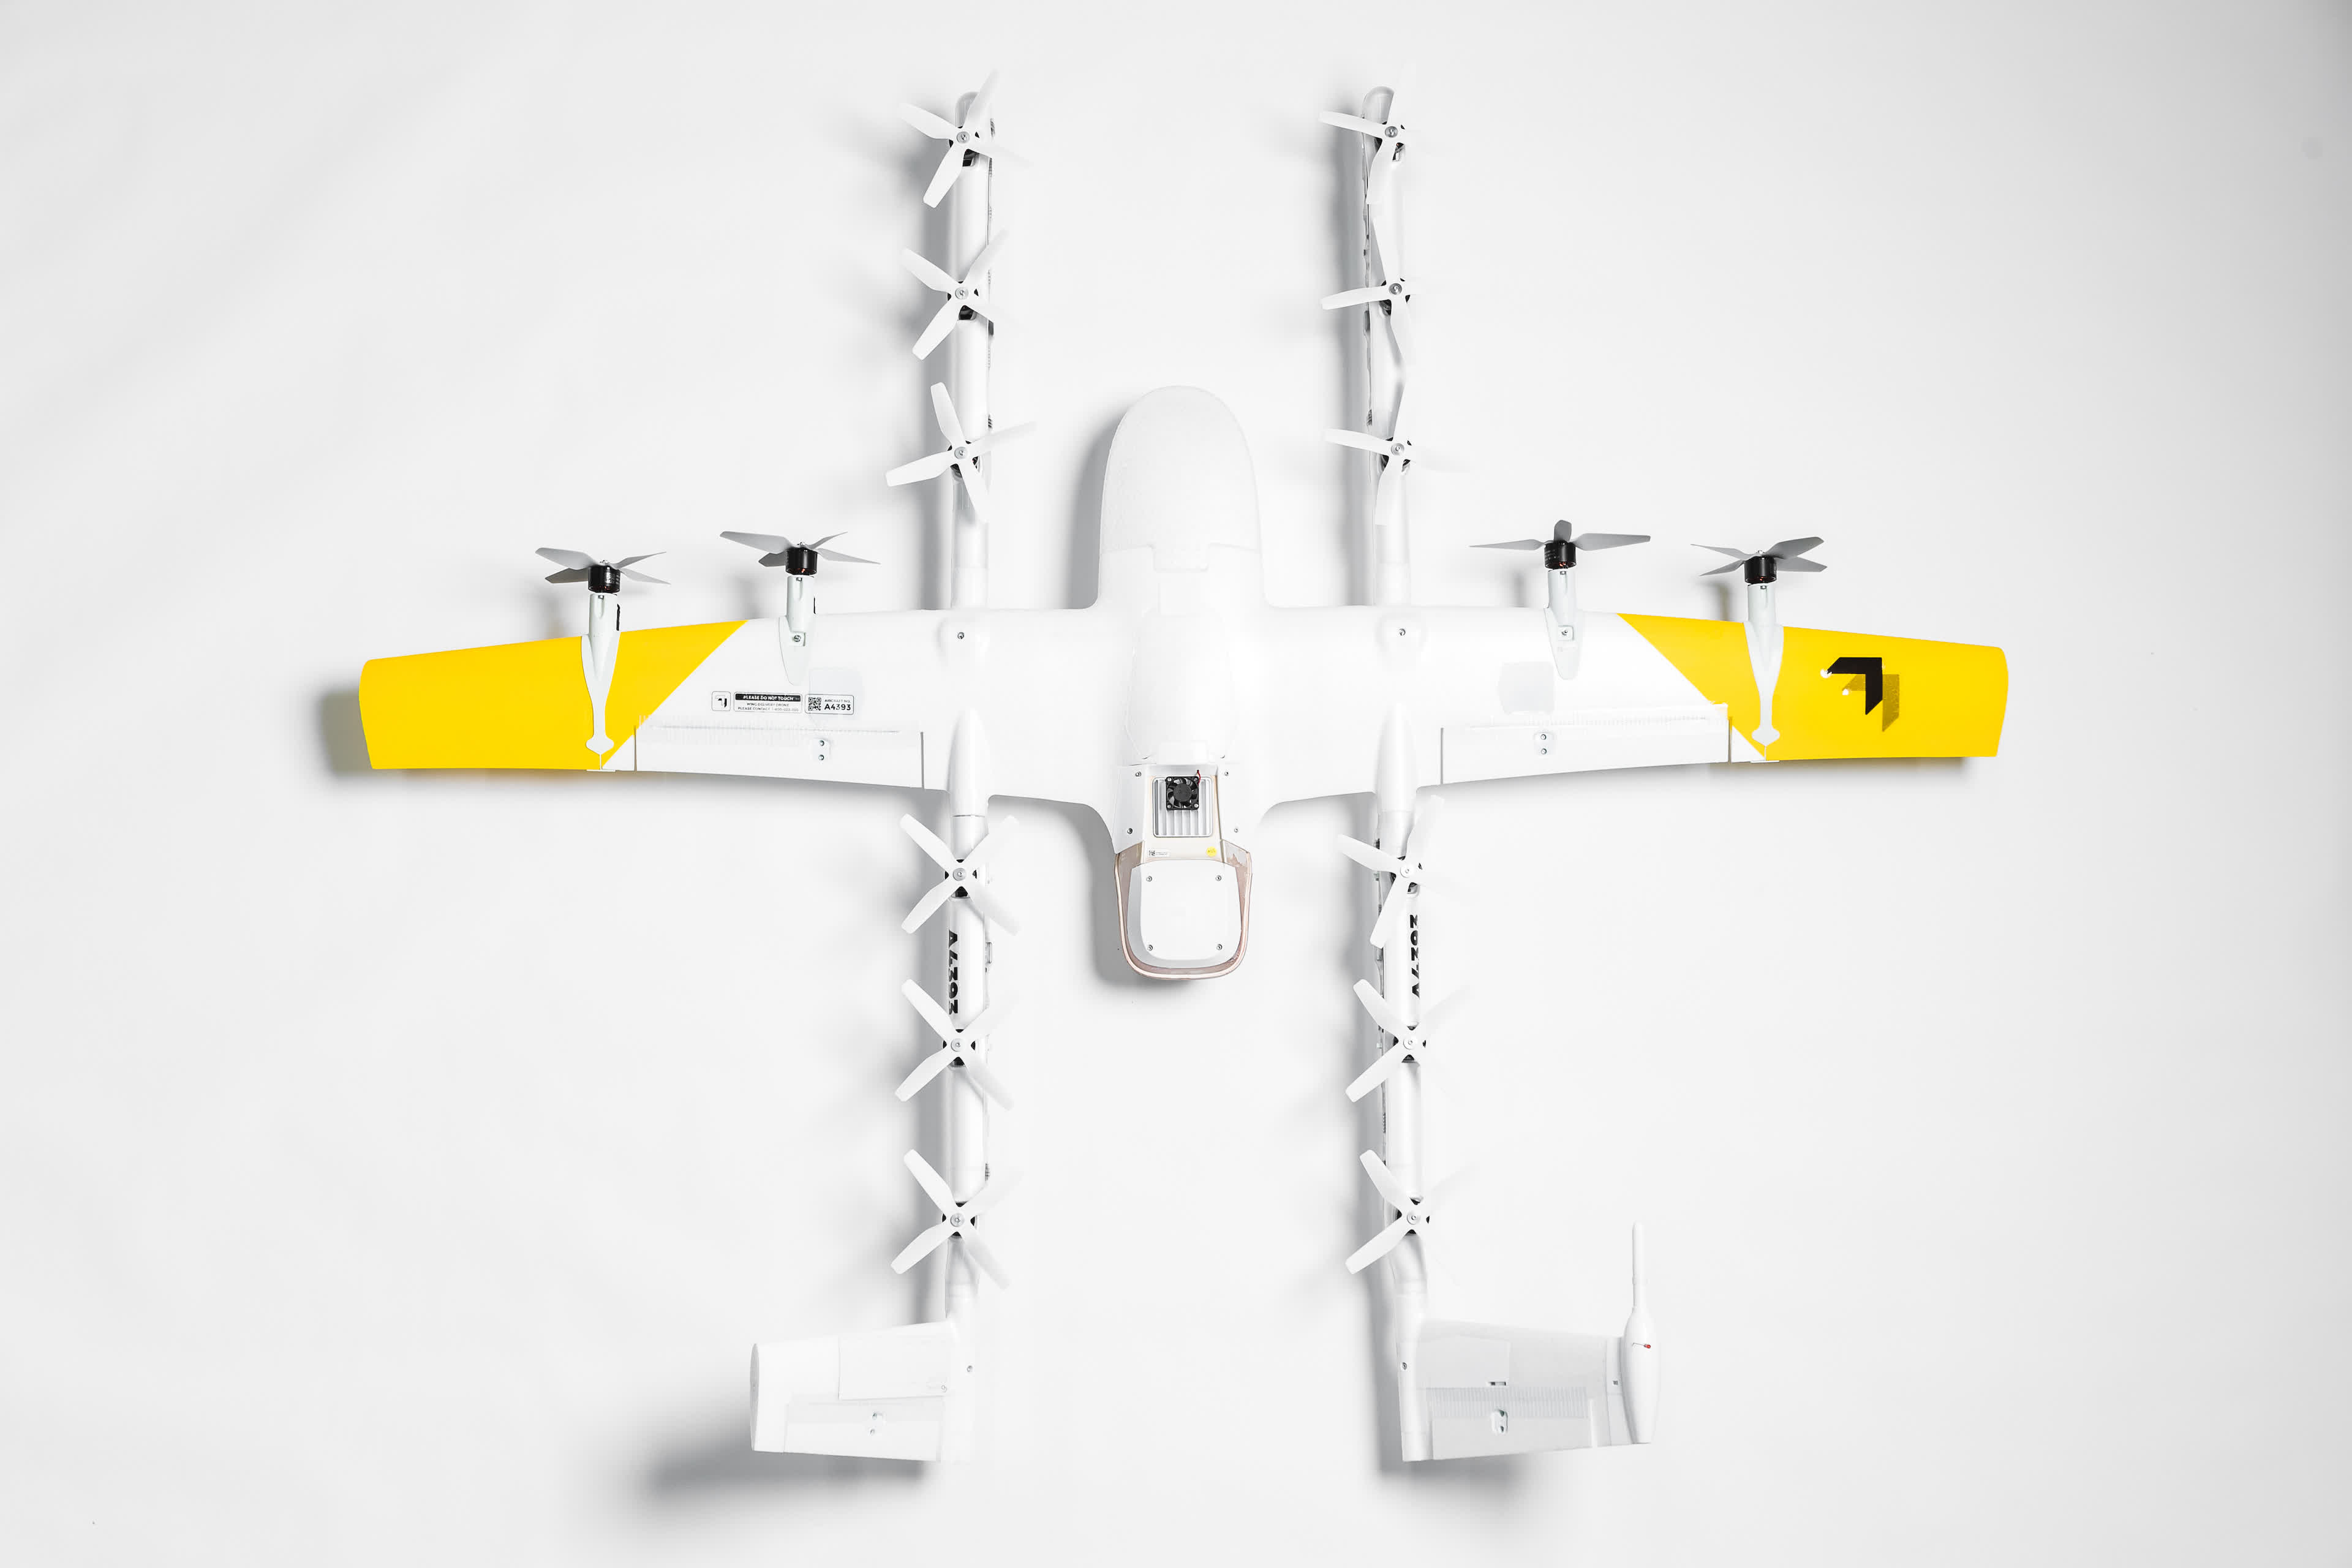 Alphabet's Wing on track to reach 100,000 drone delivery milestone by the end of this month